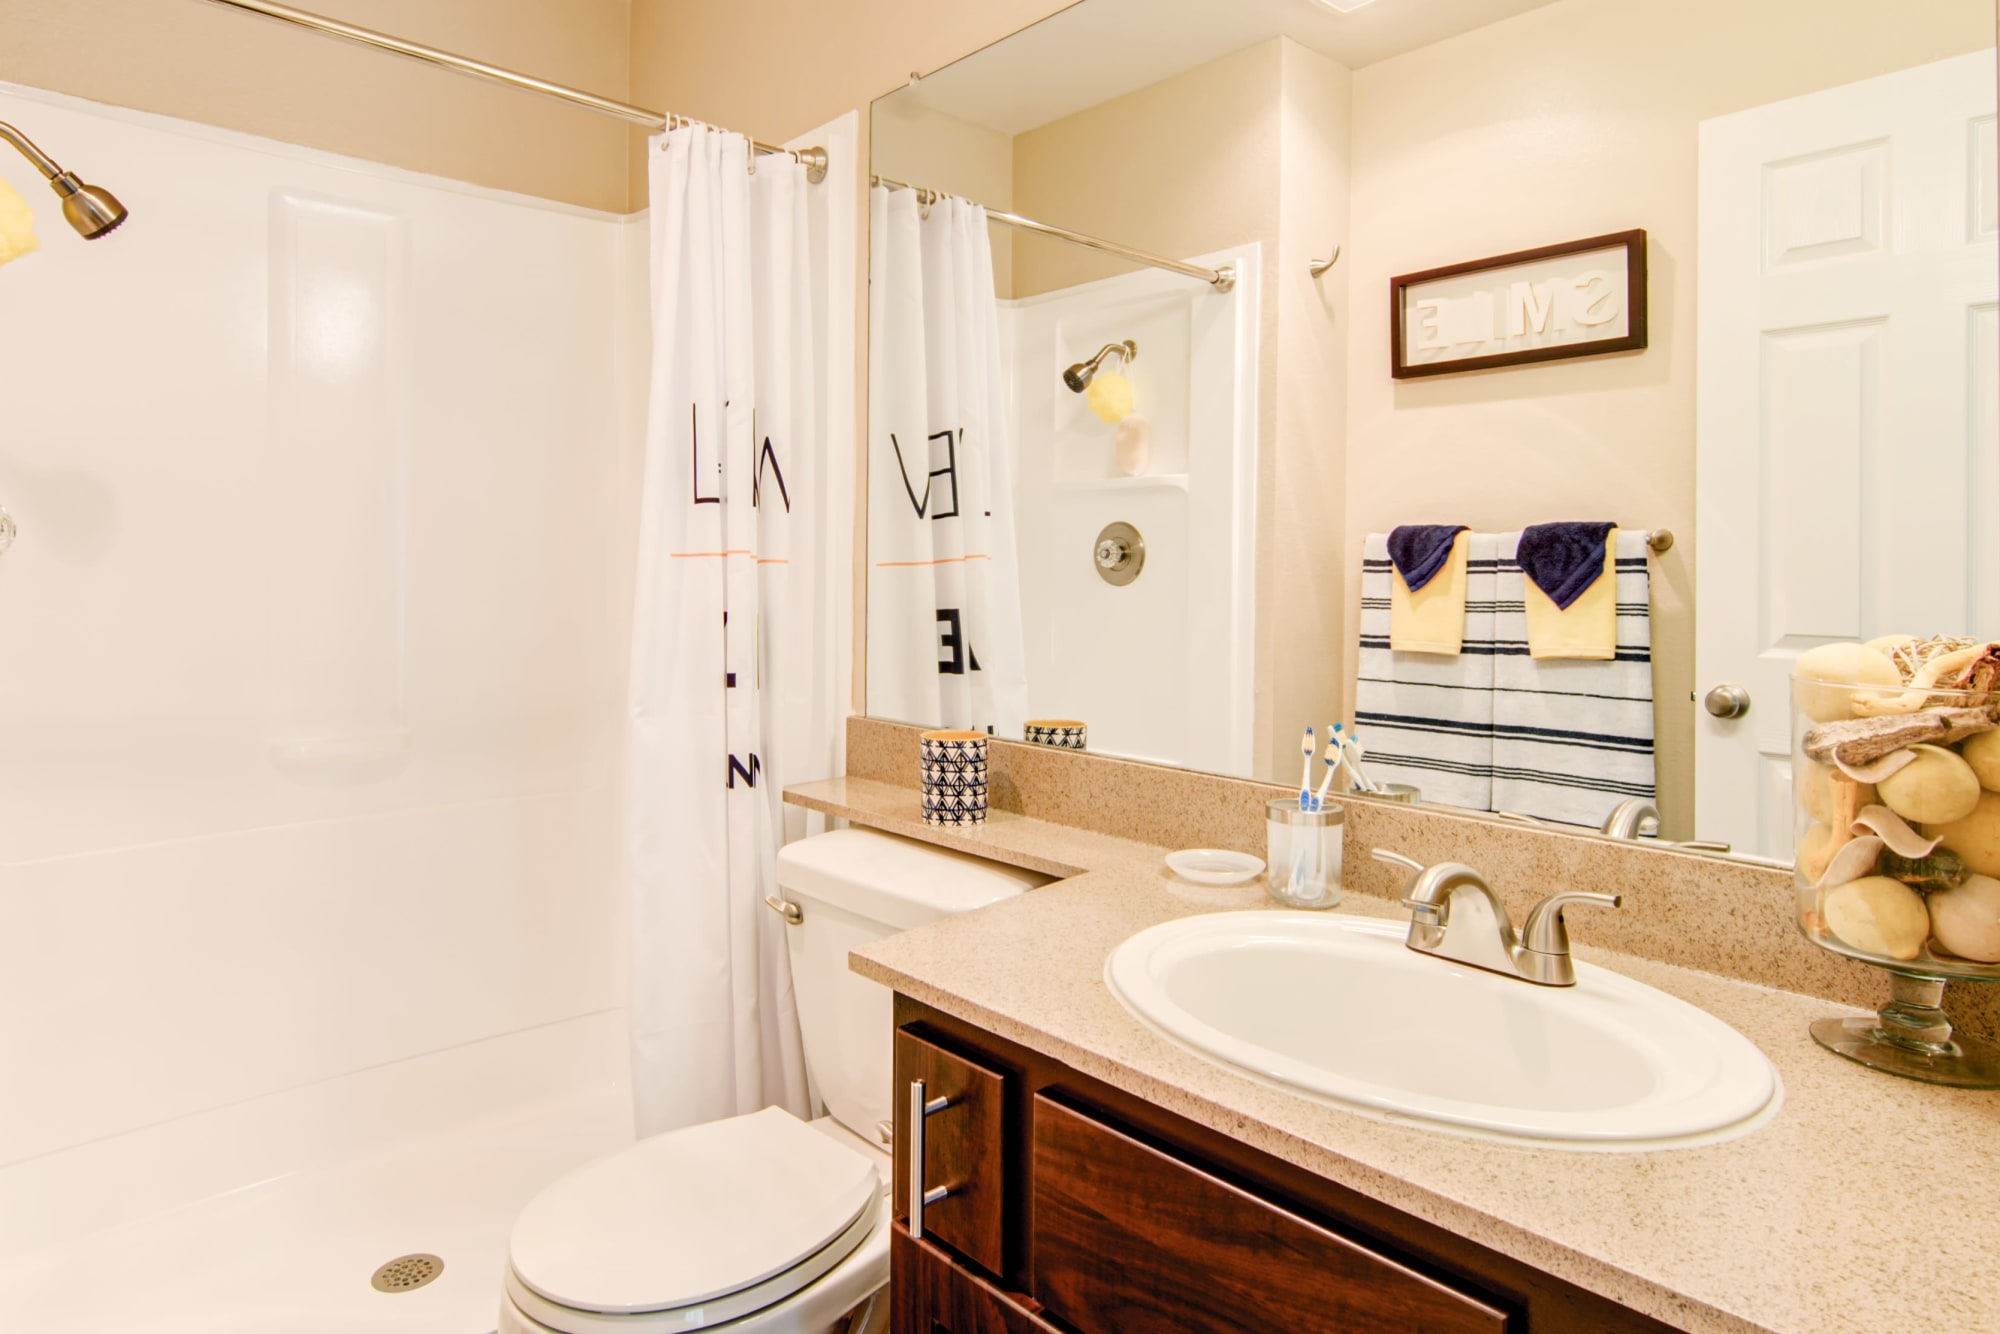 A renovated bathroom with brown cabinets at Lakeview Village Apartments in Spring Valley, California